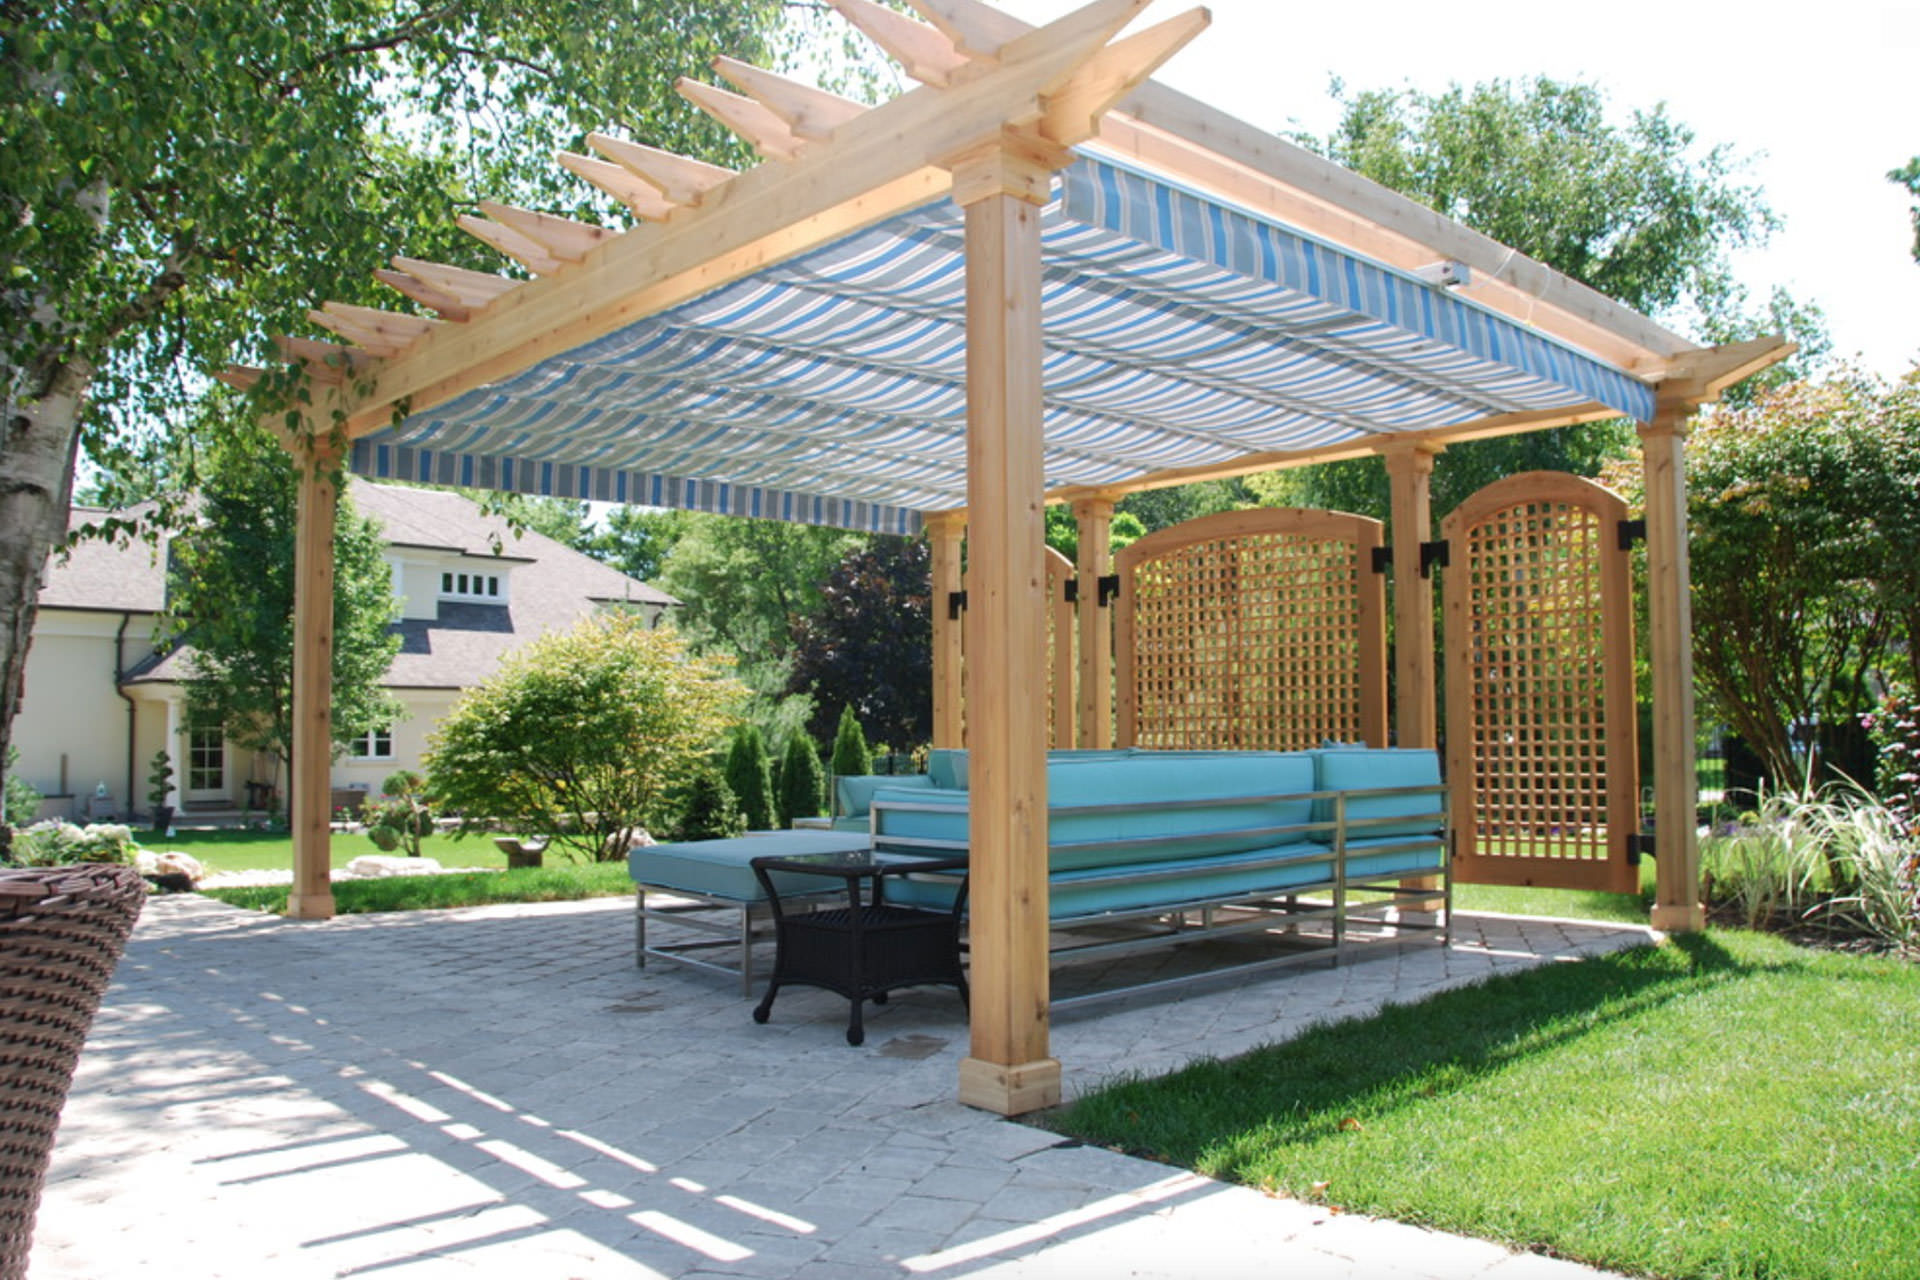 Retractable Canopy or Awning: What's the Difference?